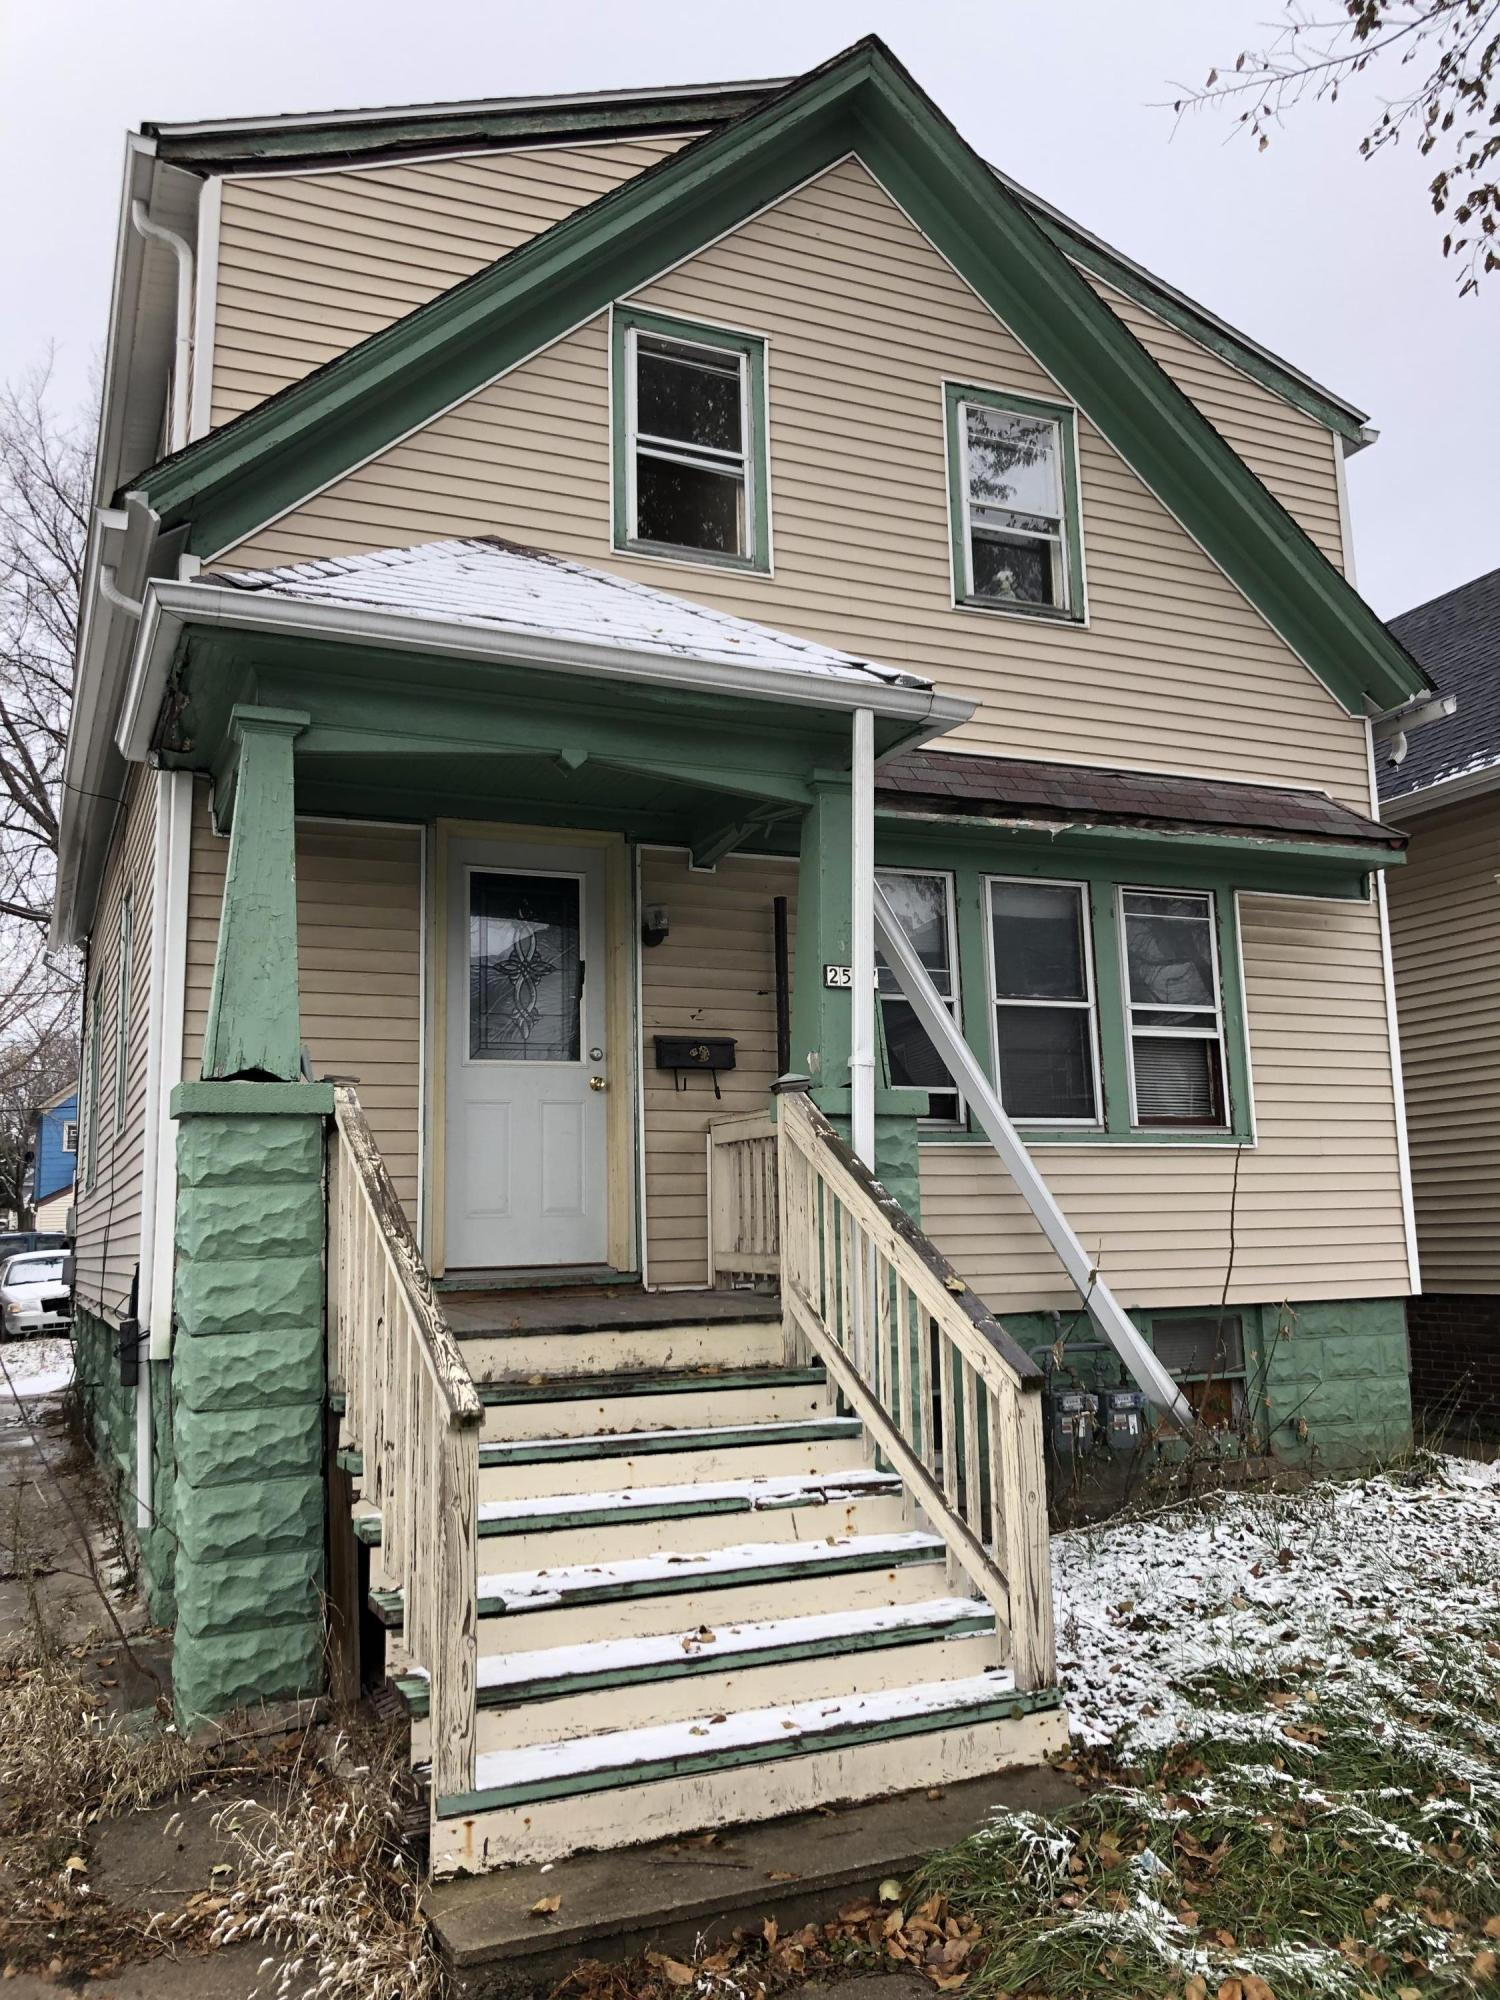 2527 11th, Milwaukee, Wisconsin 53215, 2 Bedrooms Bedrooms, 5 Rooms Rooms,1 BathroomBathrooms,Two-Family,For Sale,11th,1,1614592